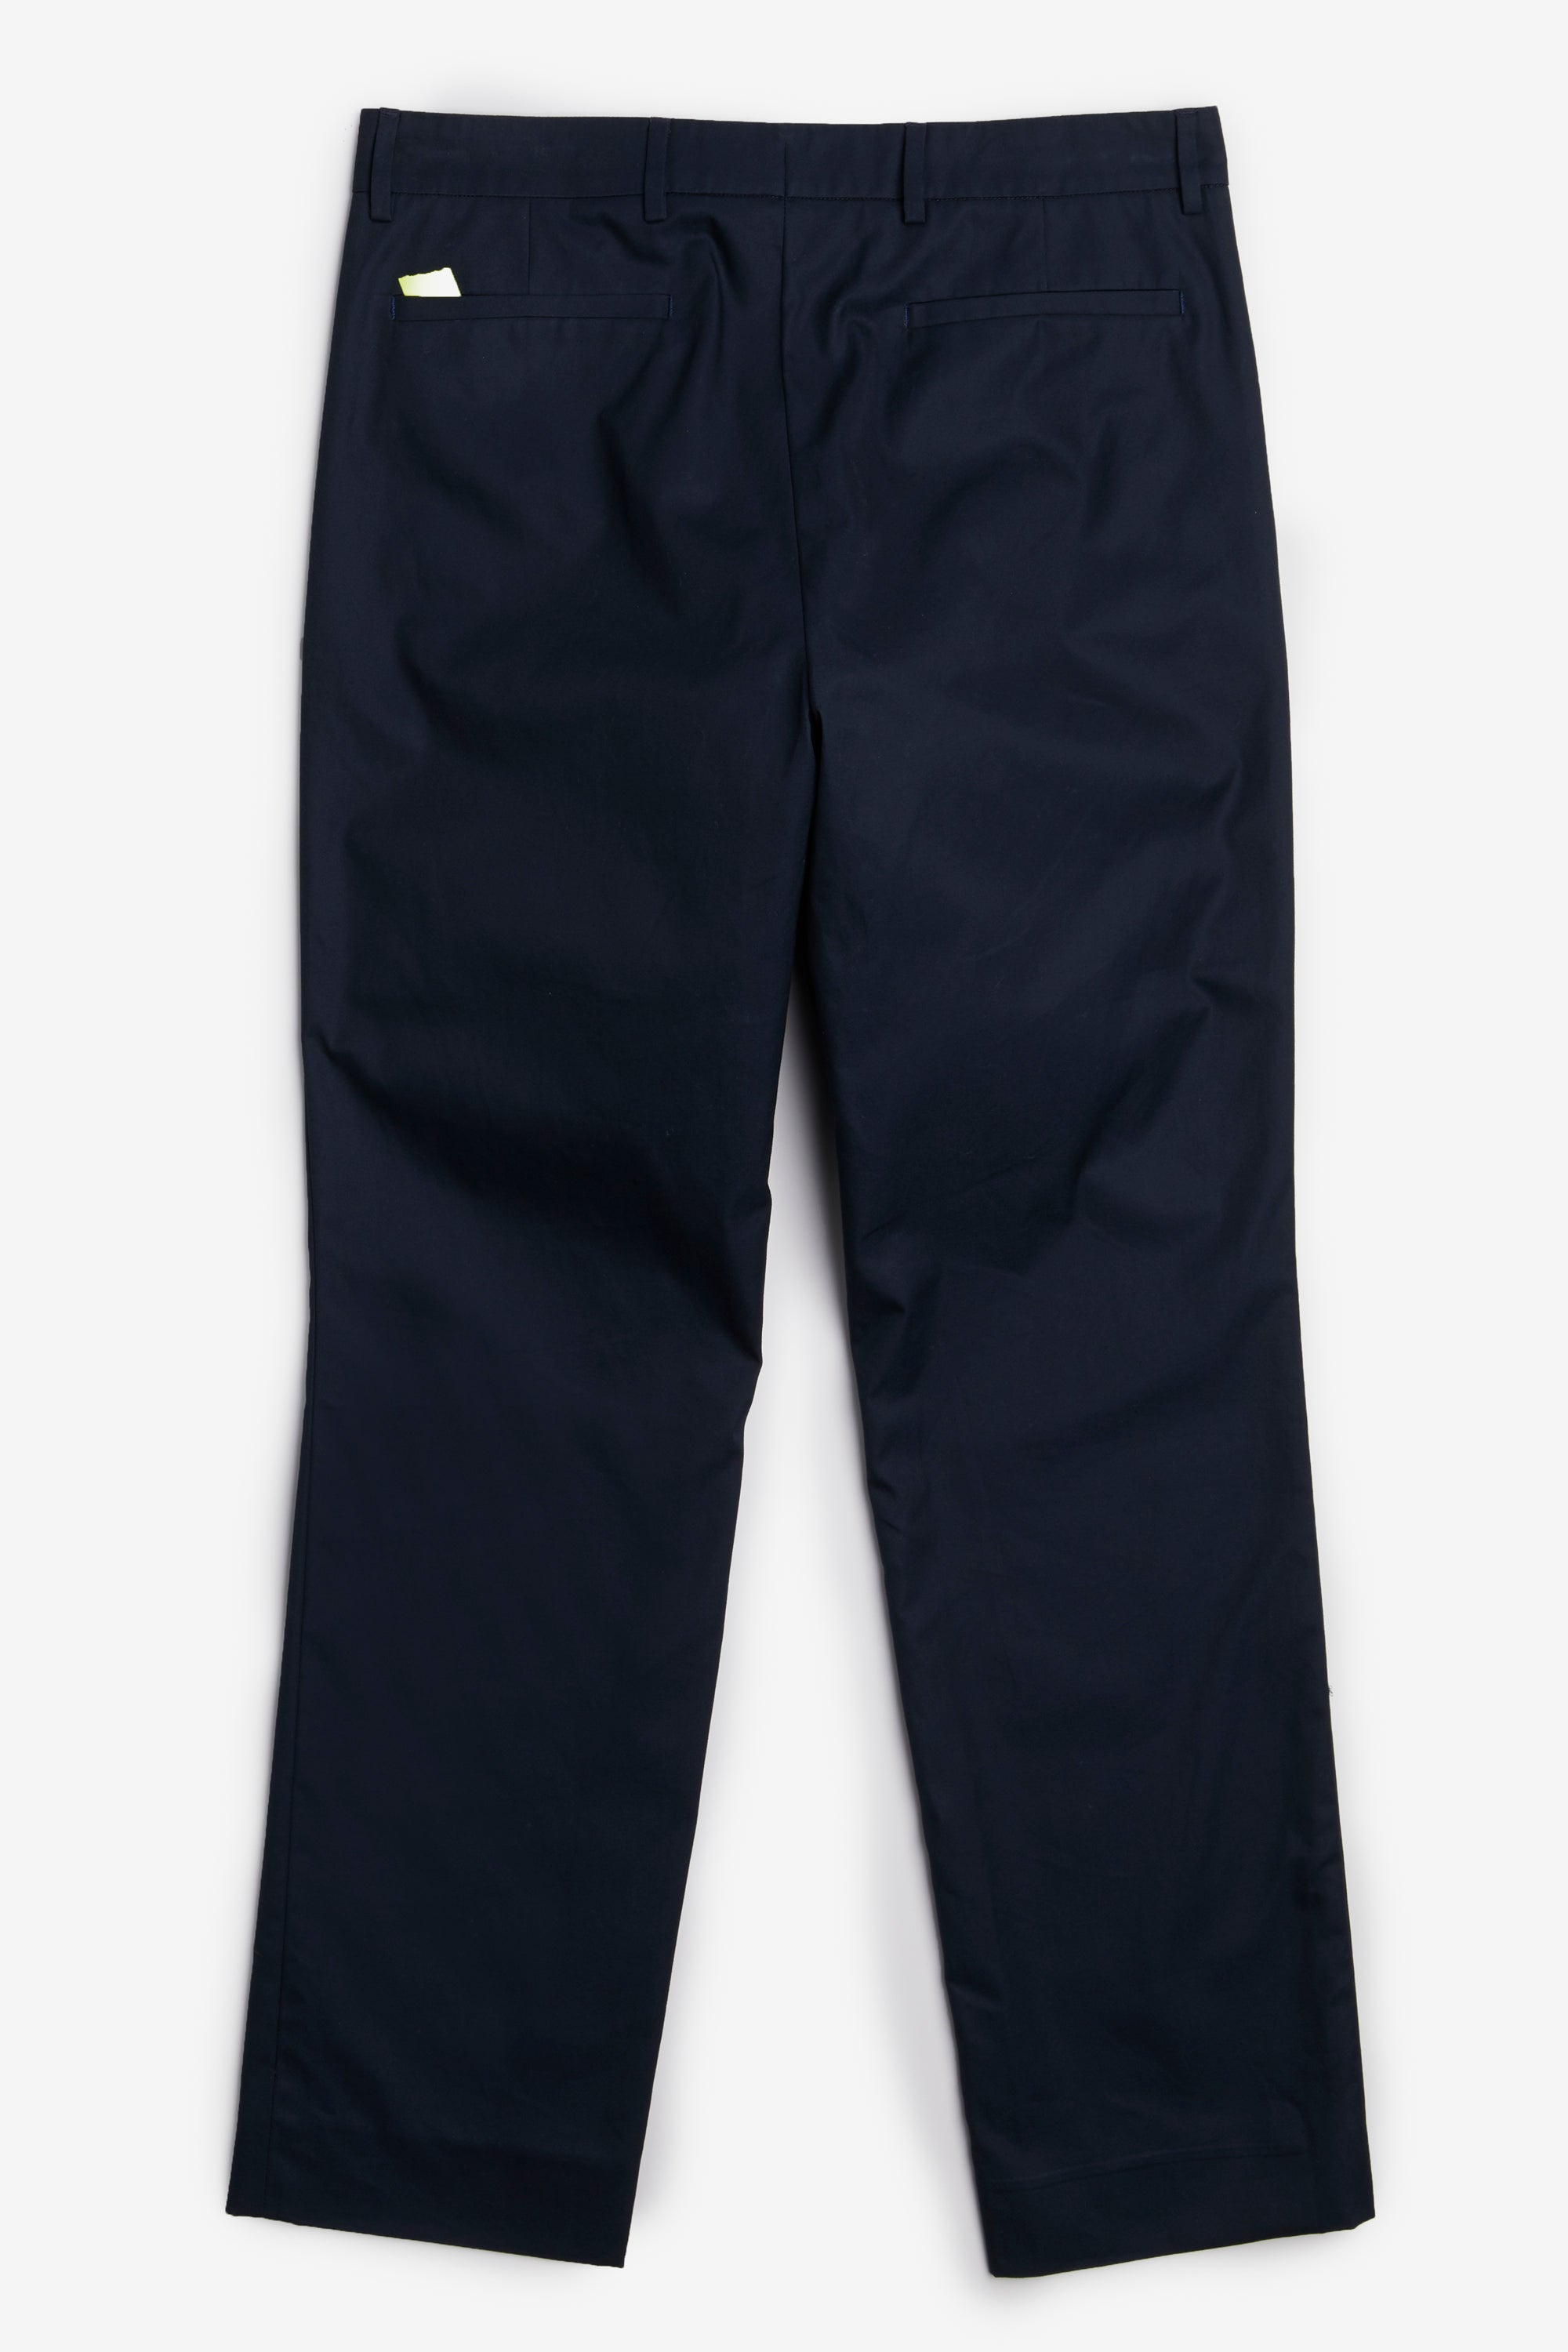 navy pant rcb cotton